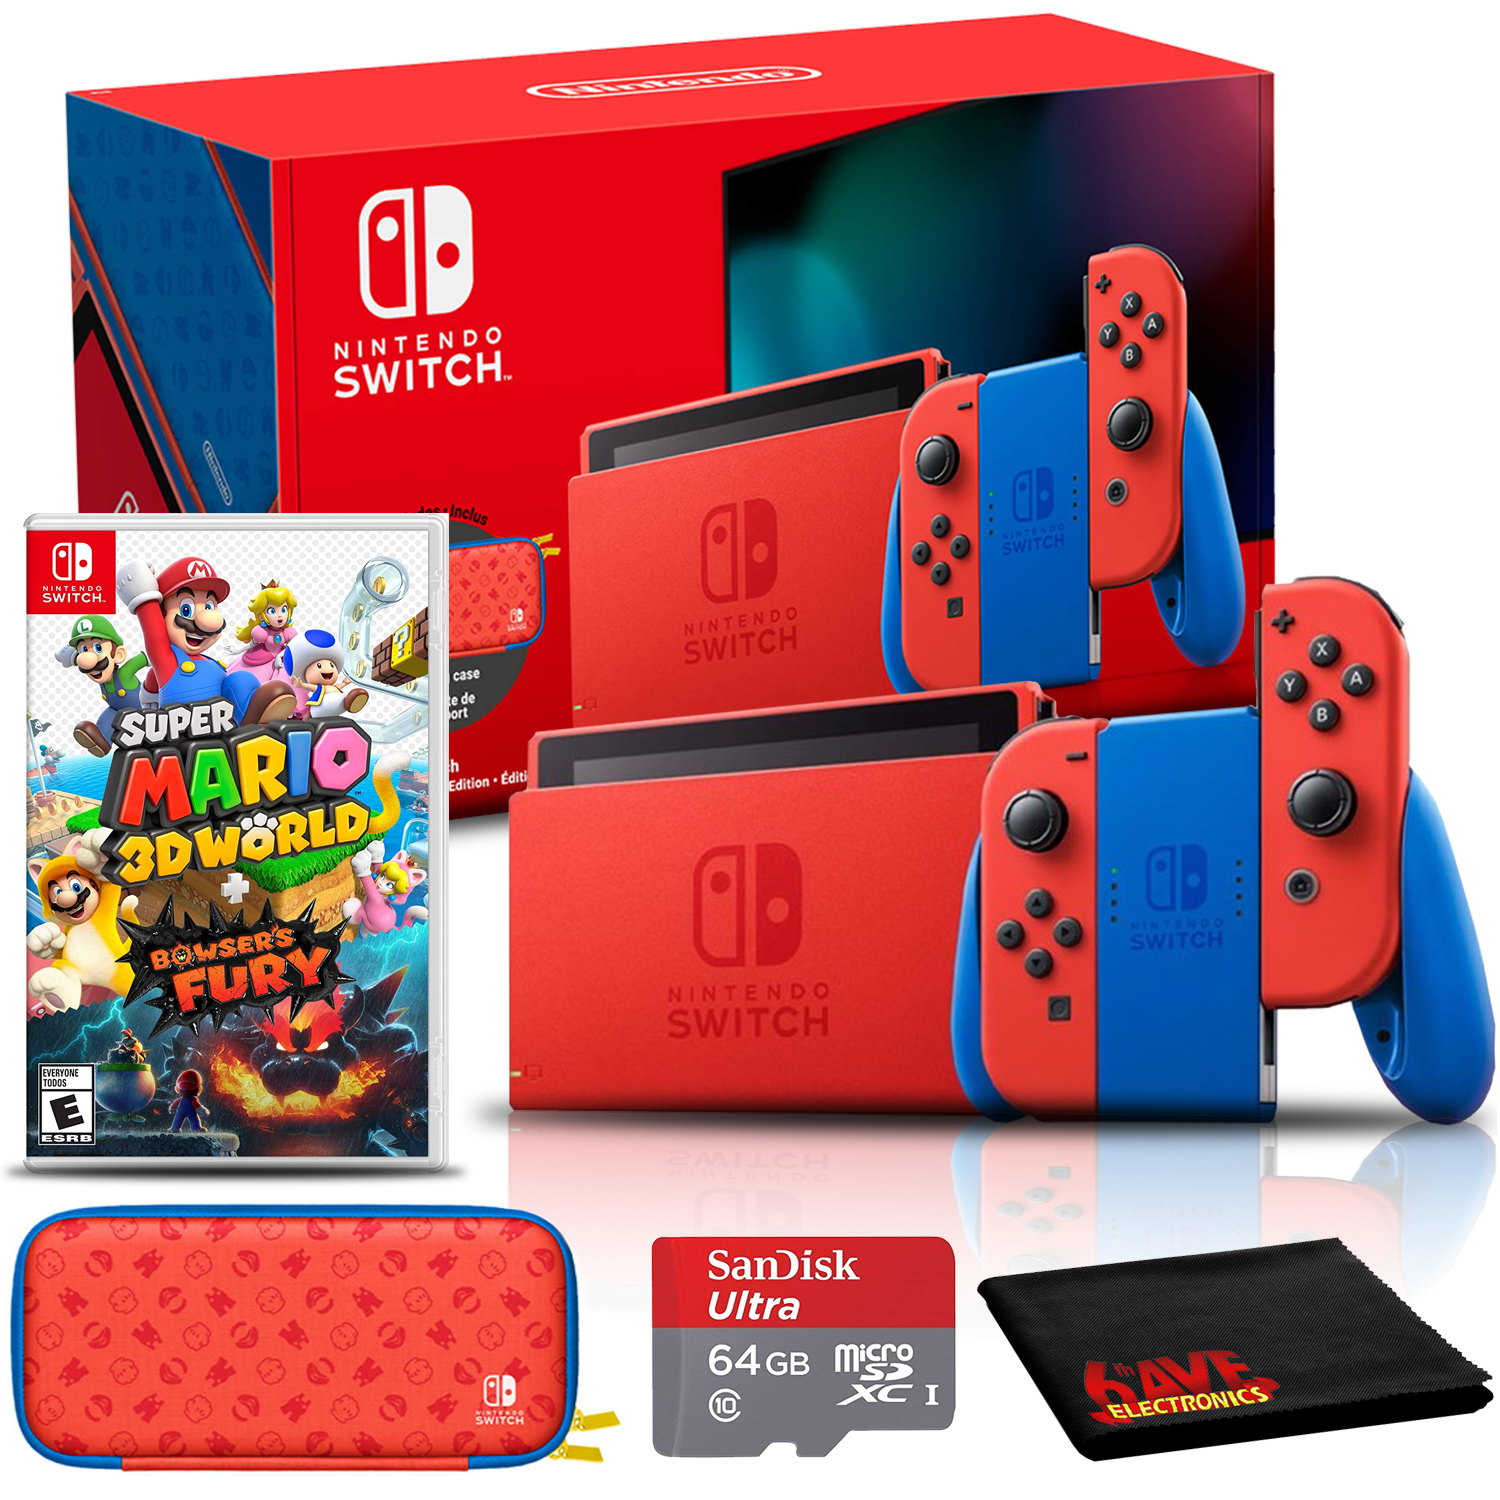 miniature 12 - Nintendo Switch Gaming Console Bundle with Super Mario 3D World + Bowser's Fury